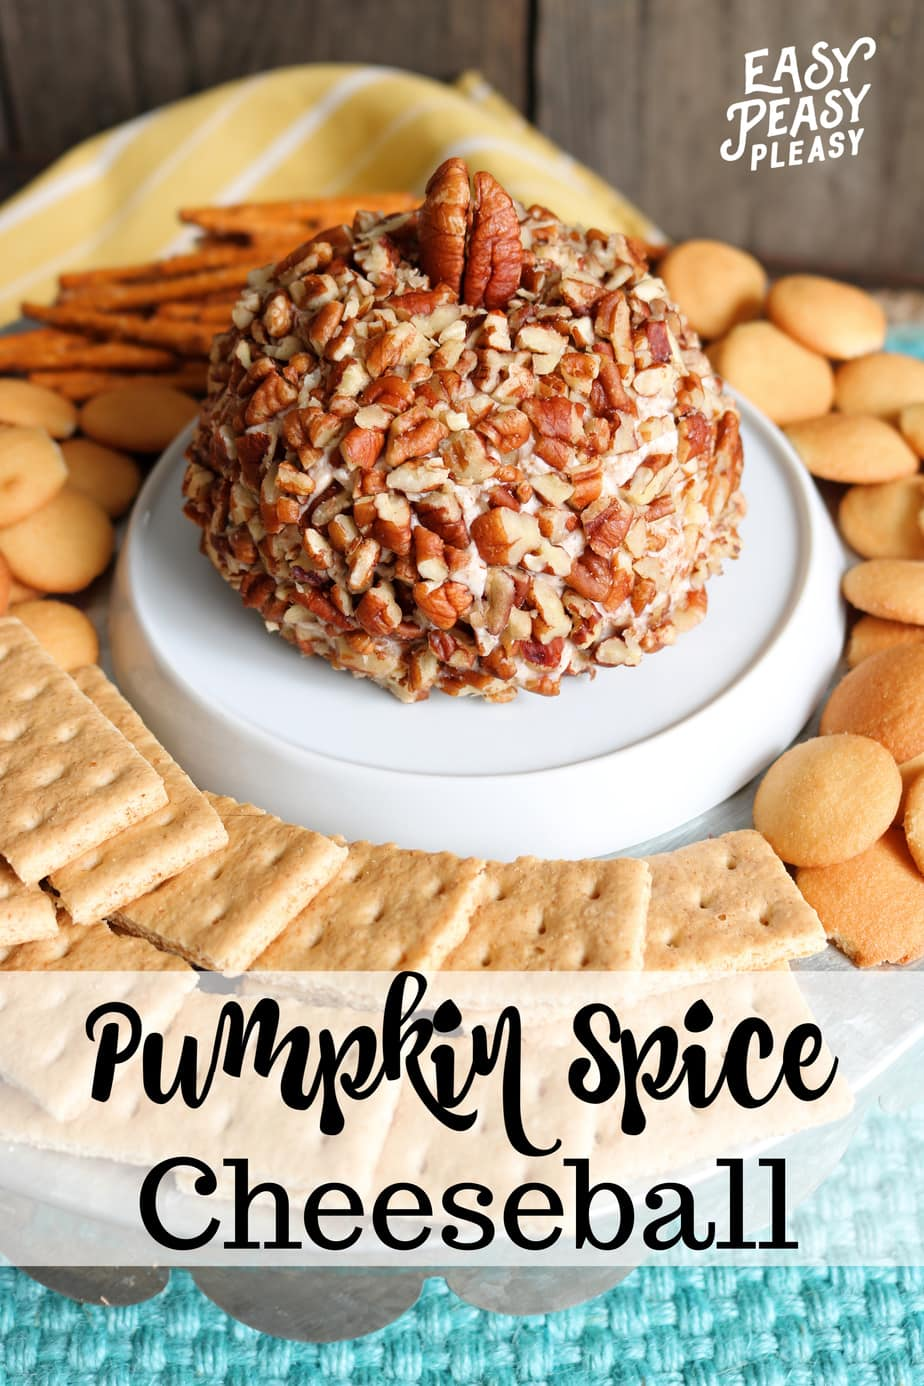 Pumpkin Spice Cheese Ball is the perfect appetizer for the Holidays.